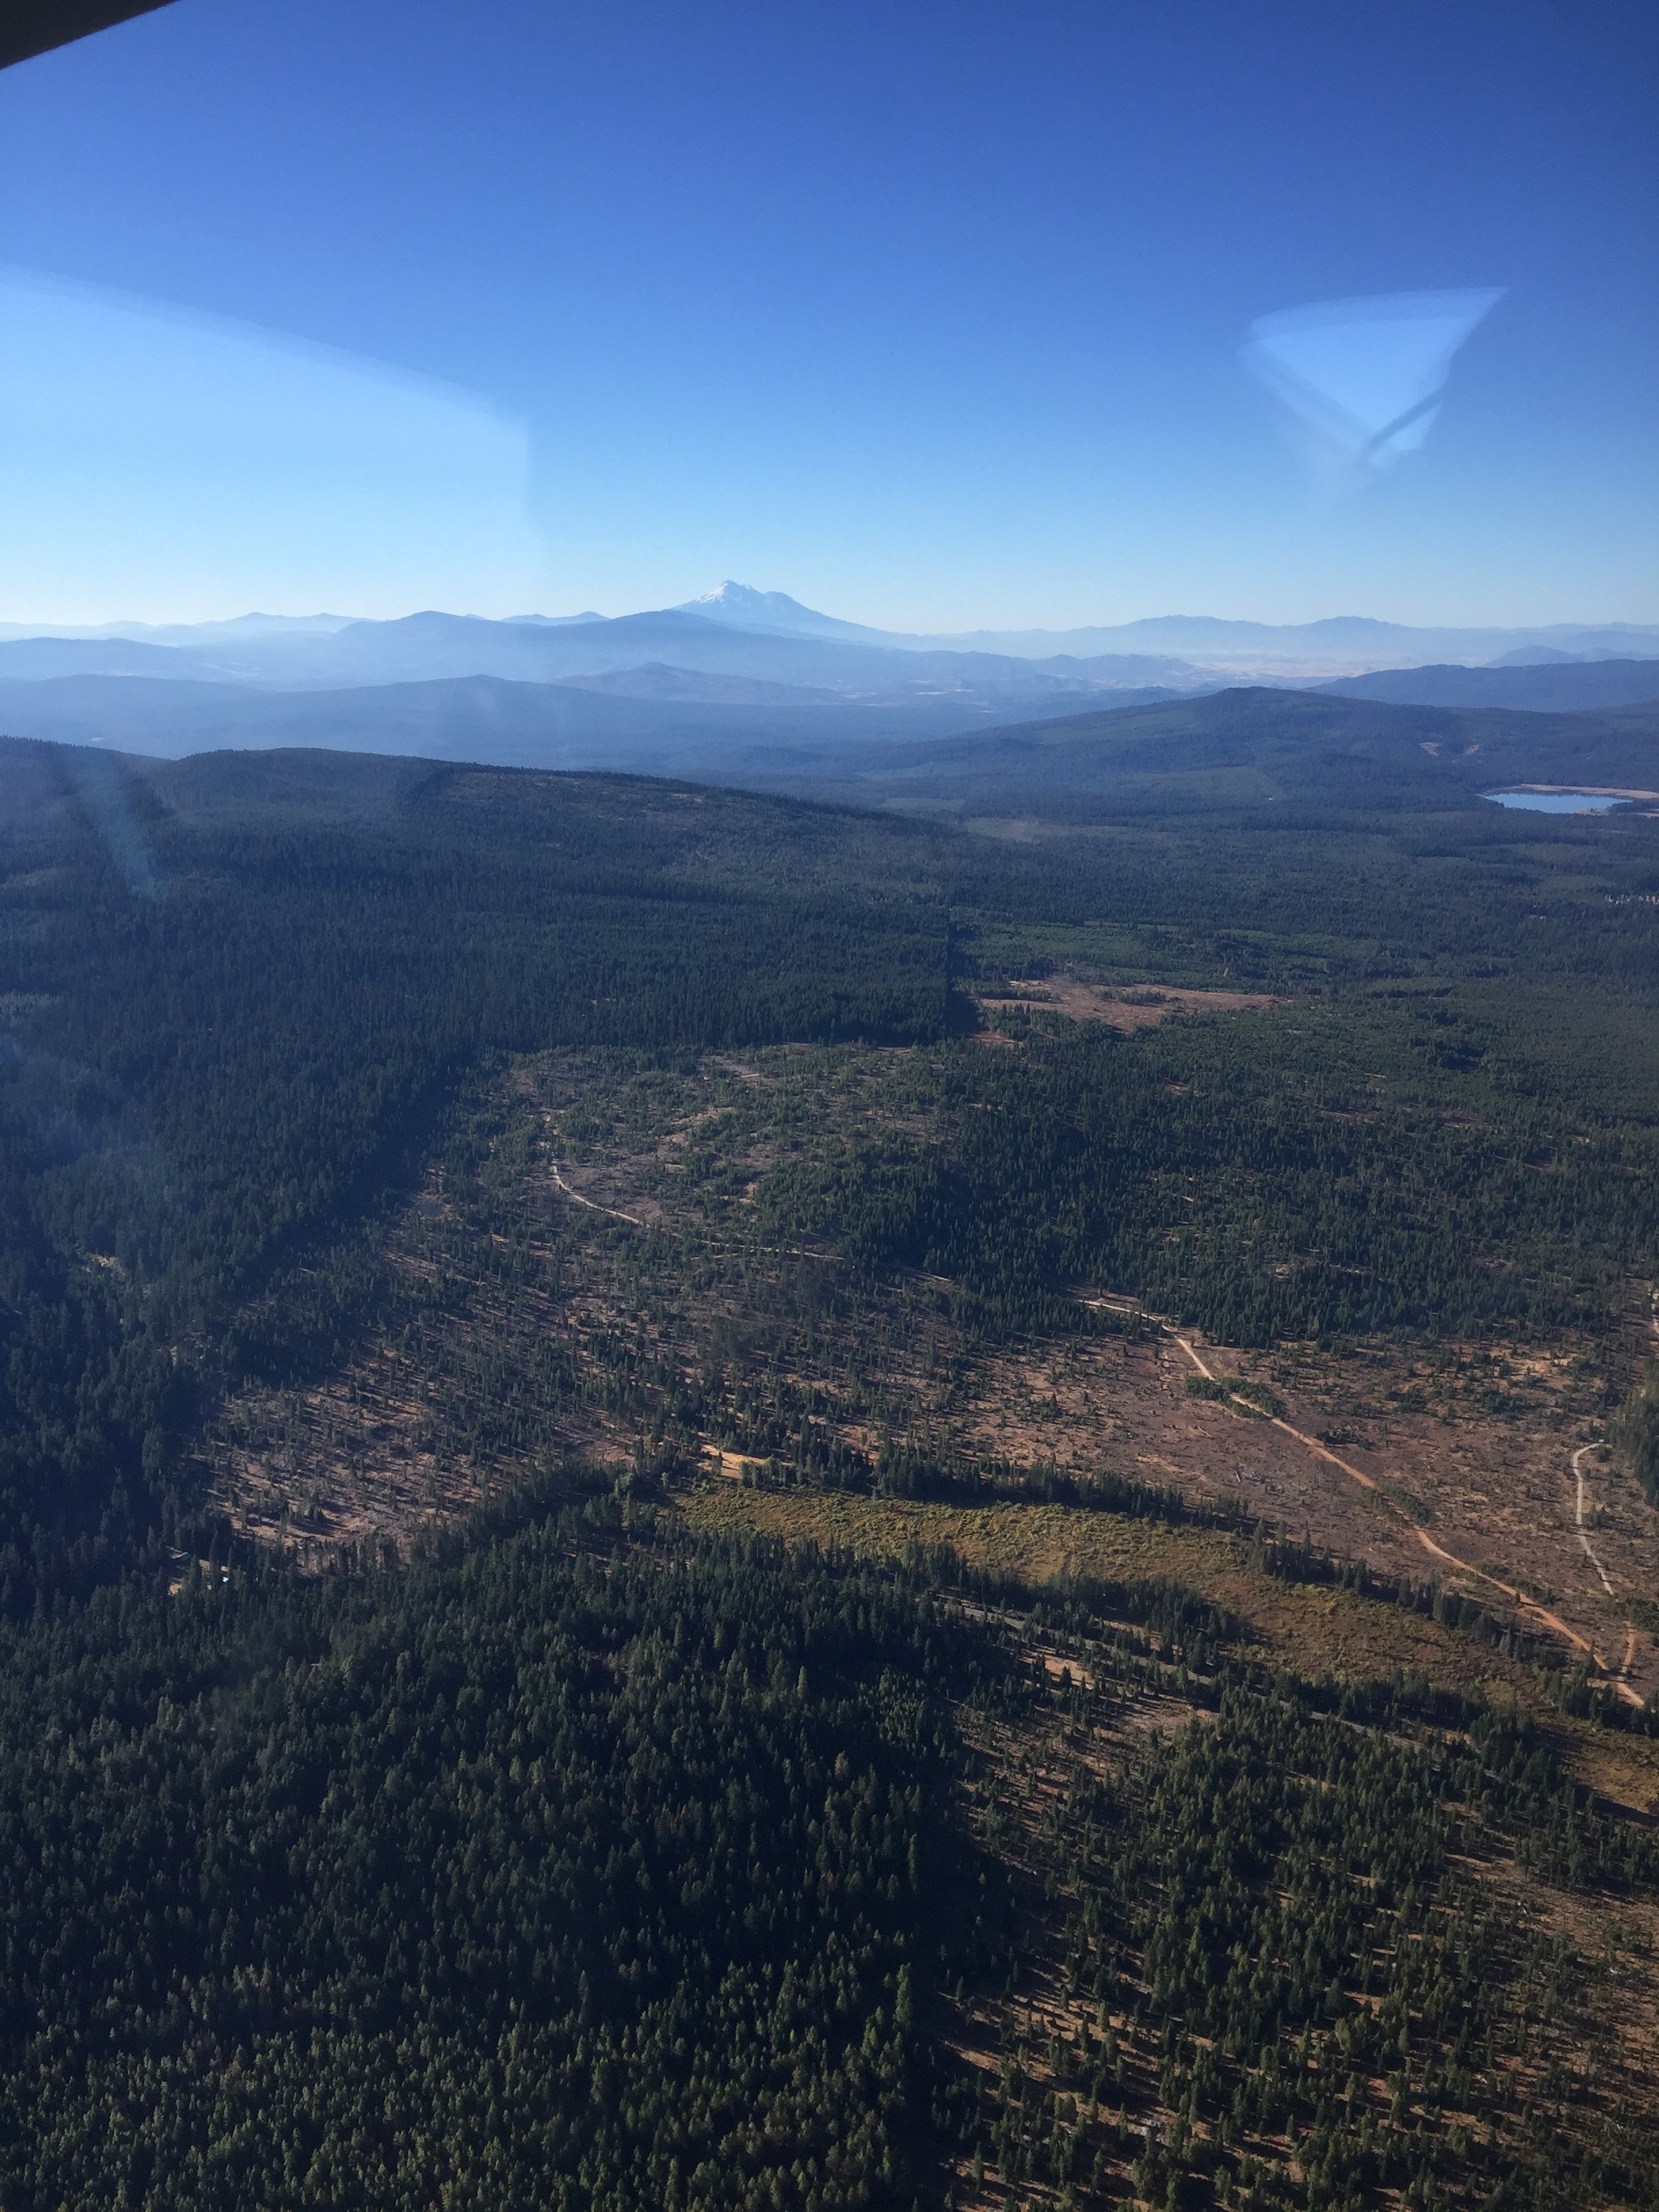 A clear view of the boundary between the Rogue River-Siskiyou National Forest to the left and private lands to the right.